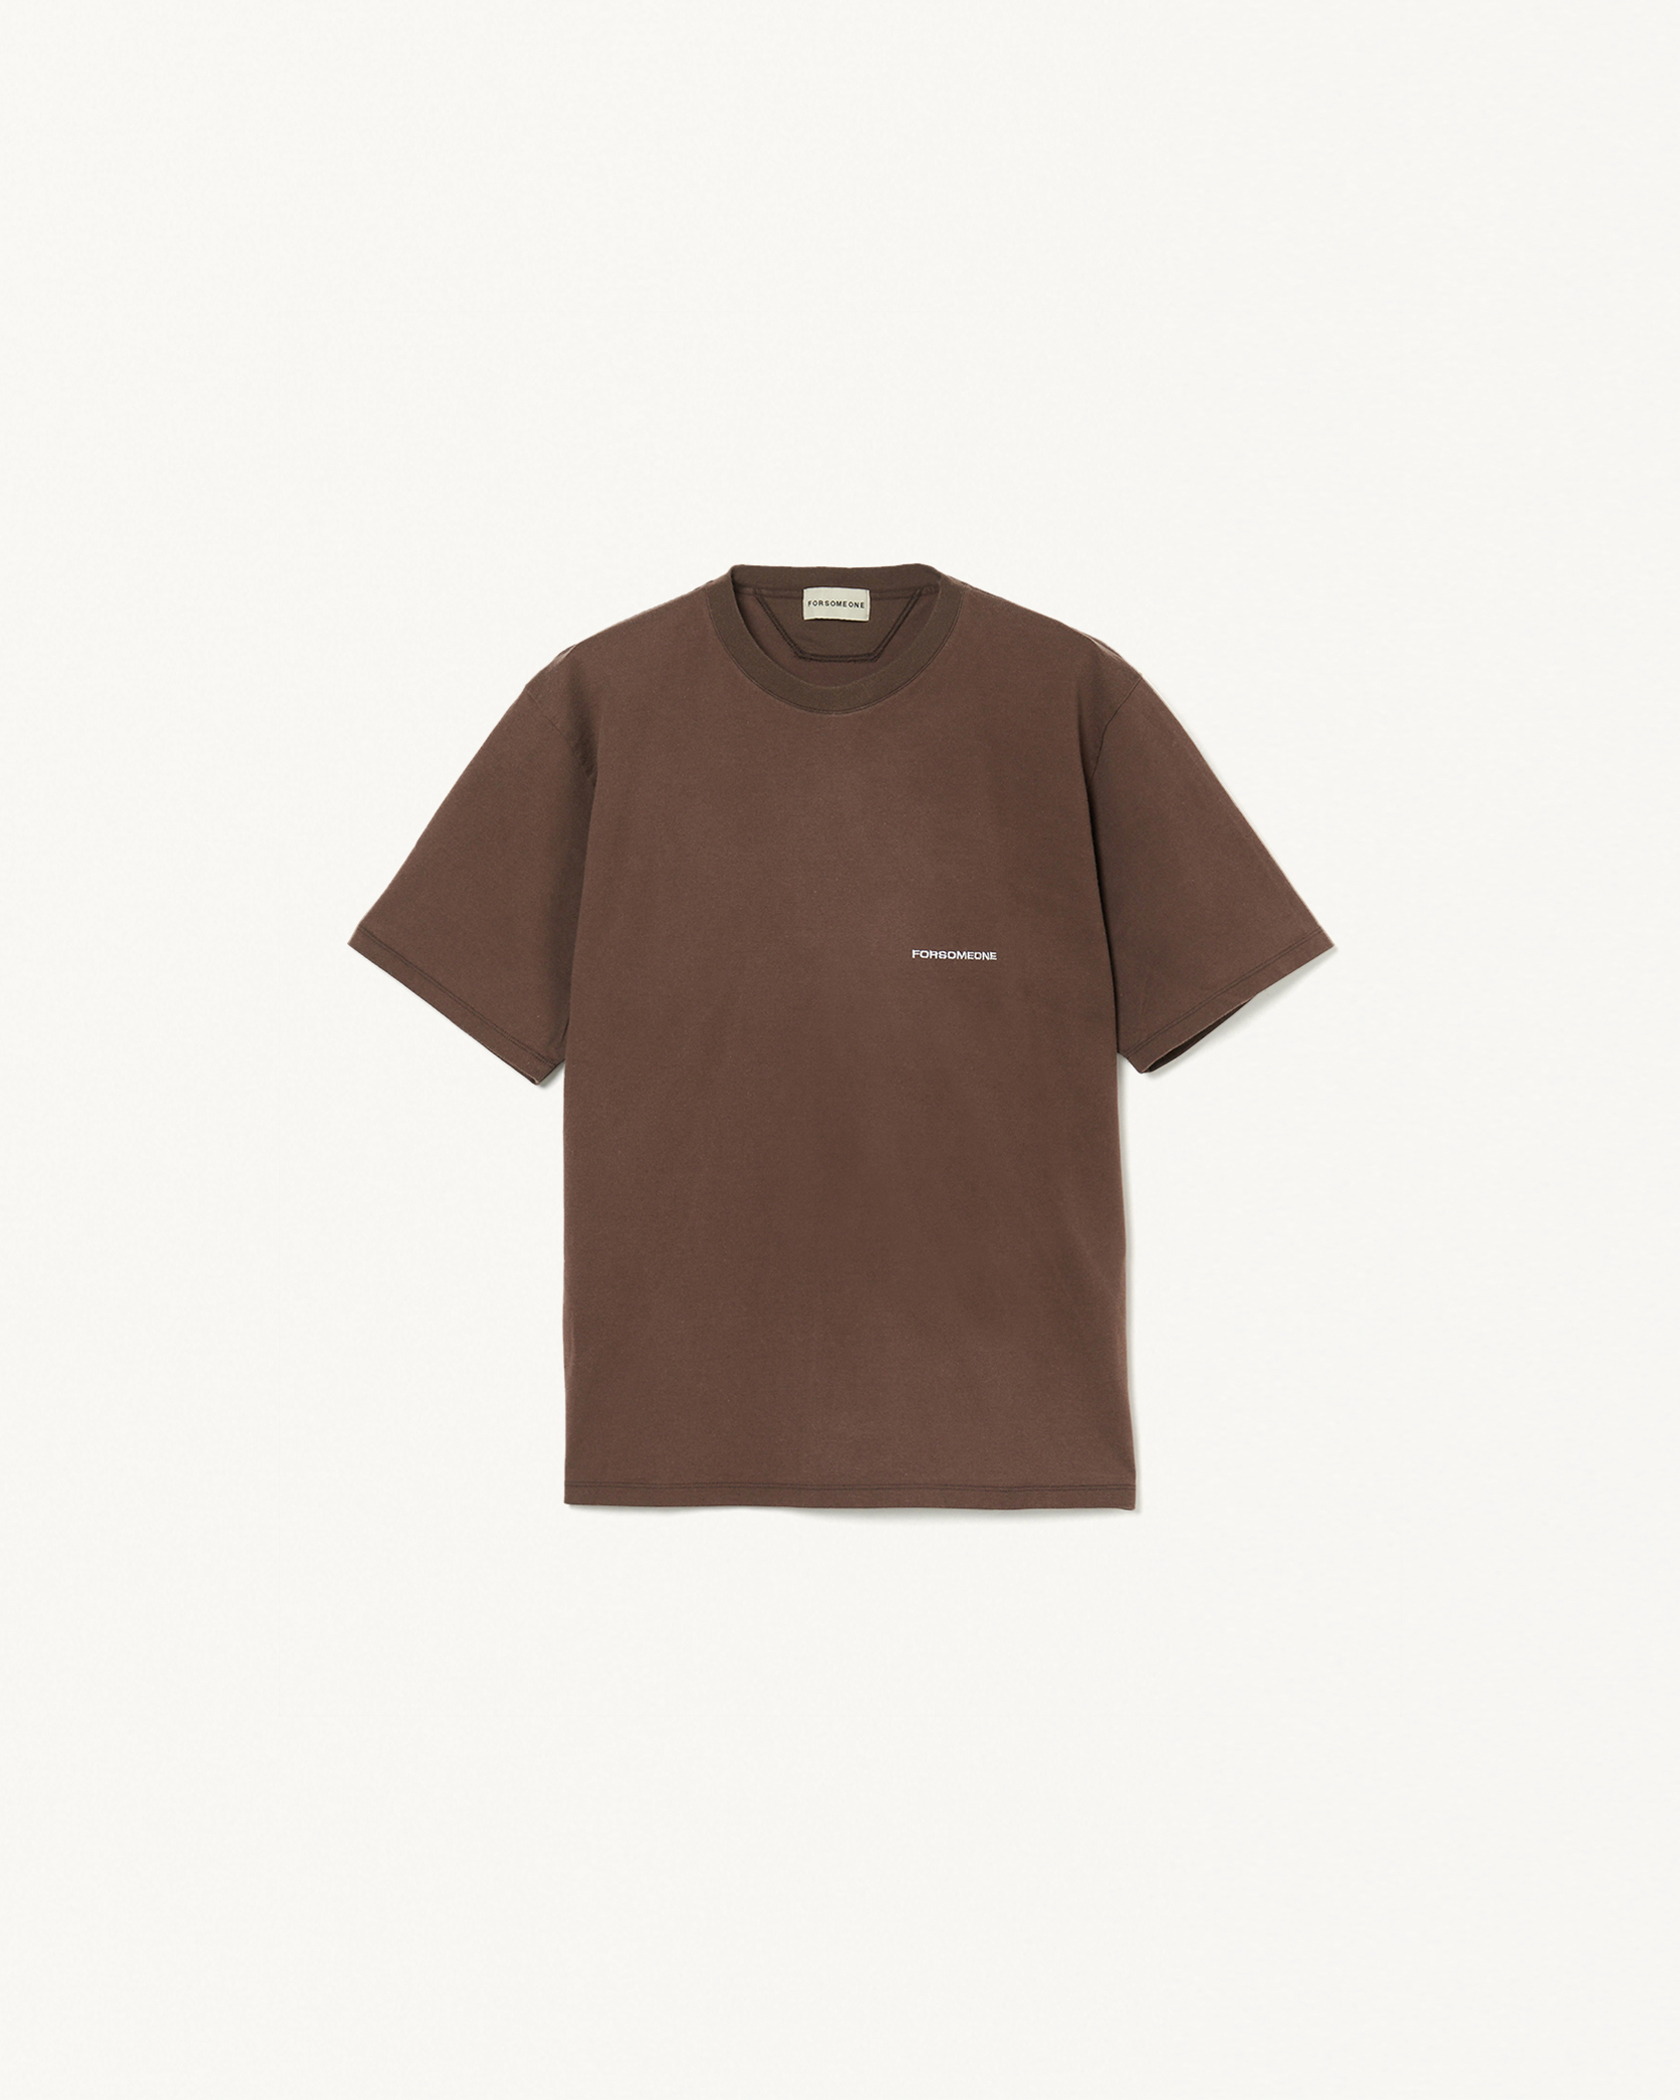 BACK FSO 001 TEE 2.0 詳細画像 Brown 7